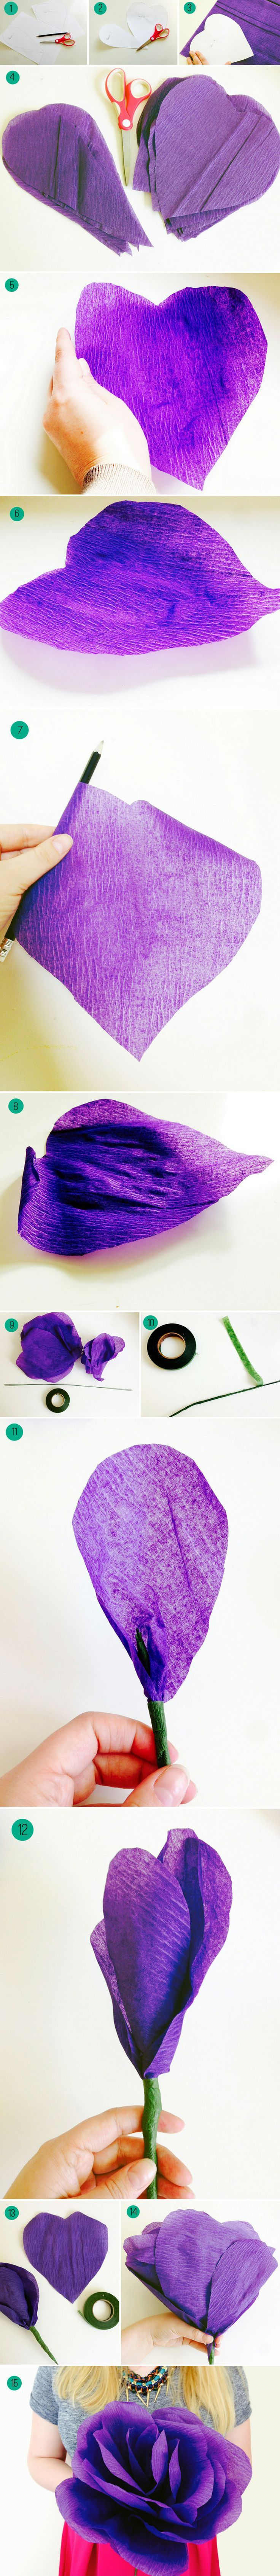 #DIY How to make a giant crepe paper bouquet